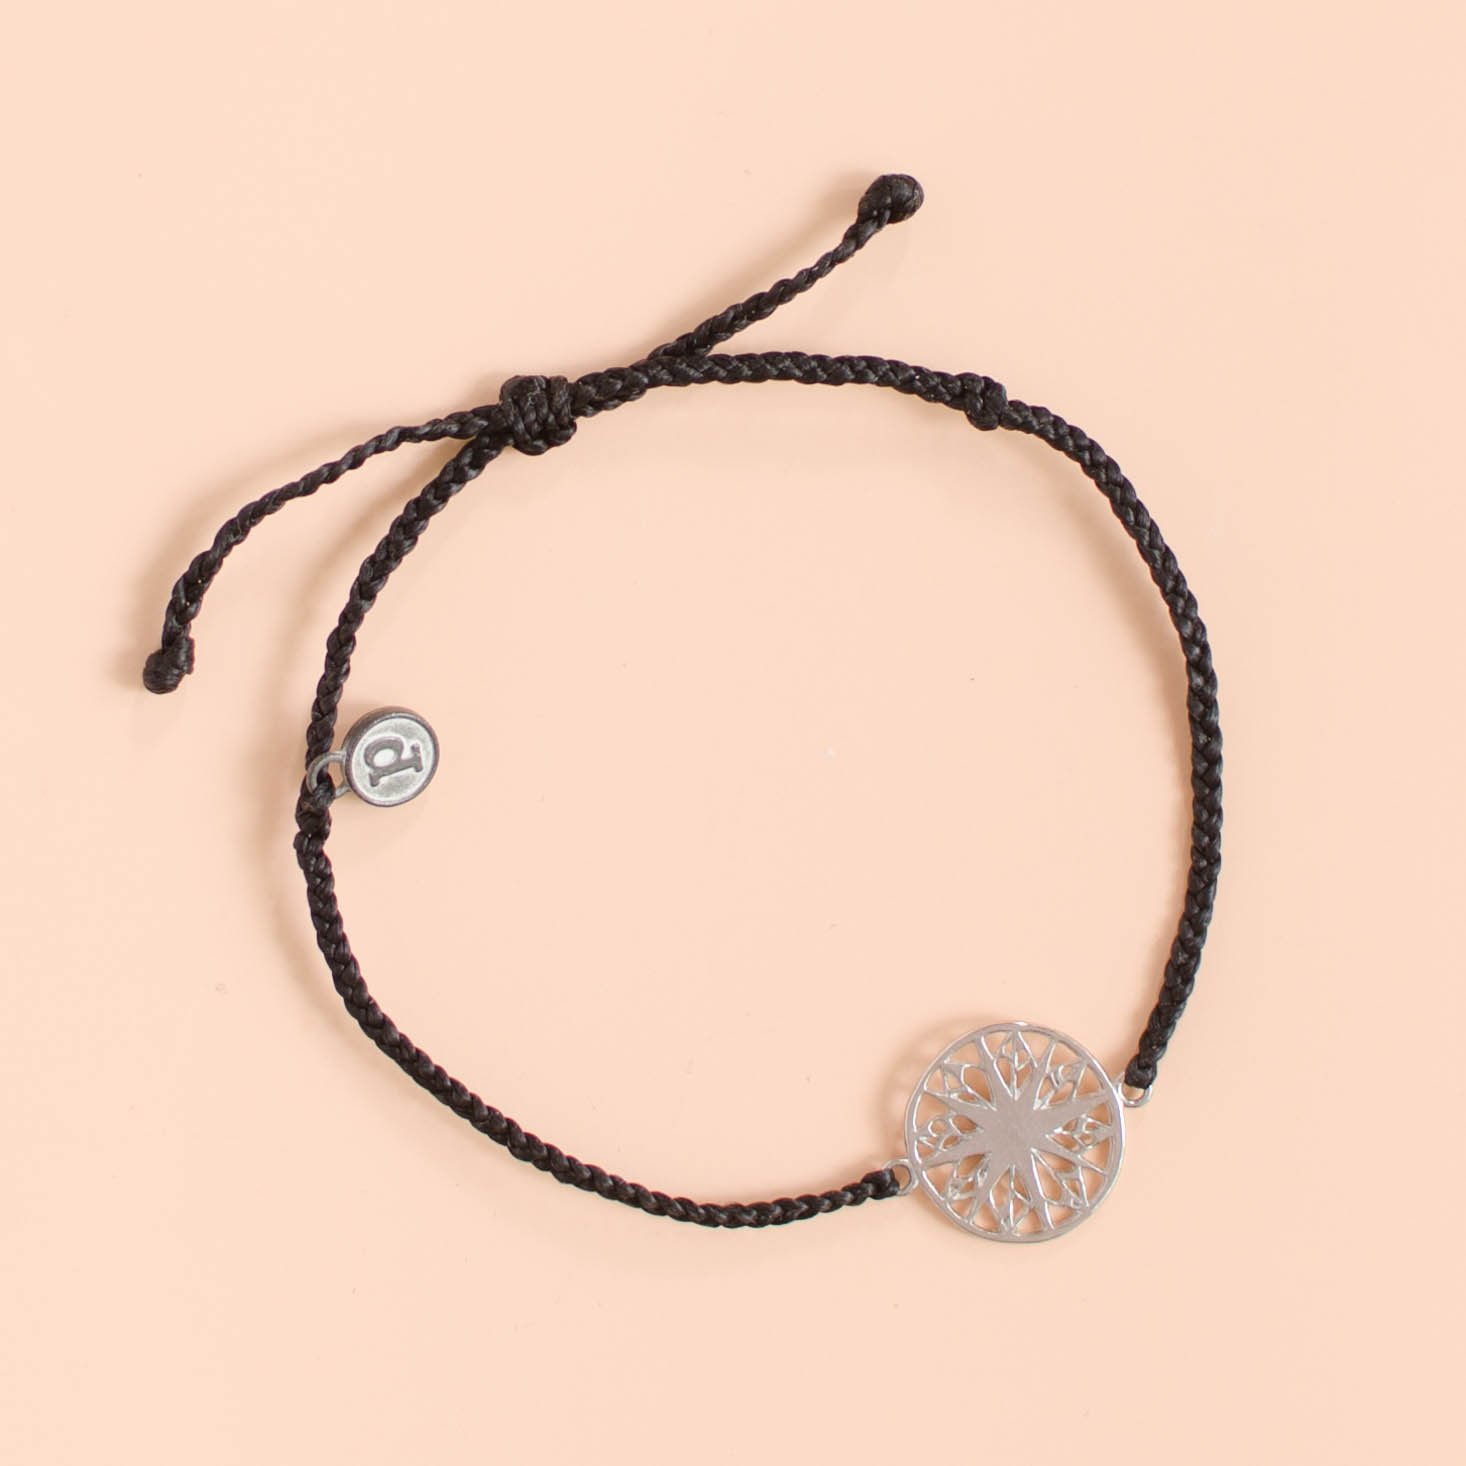 pura-vida-bracelet-monthly-club-september-2016-006